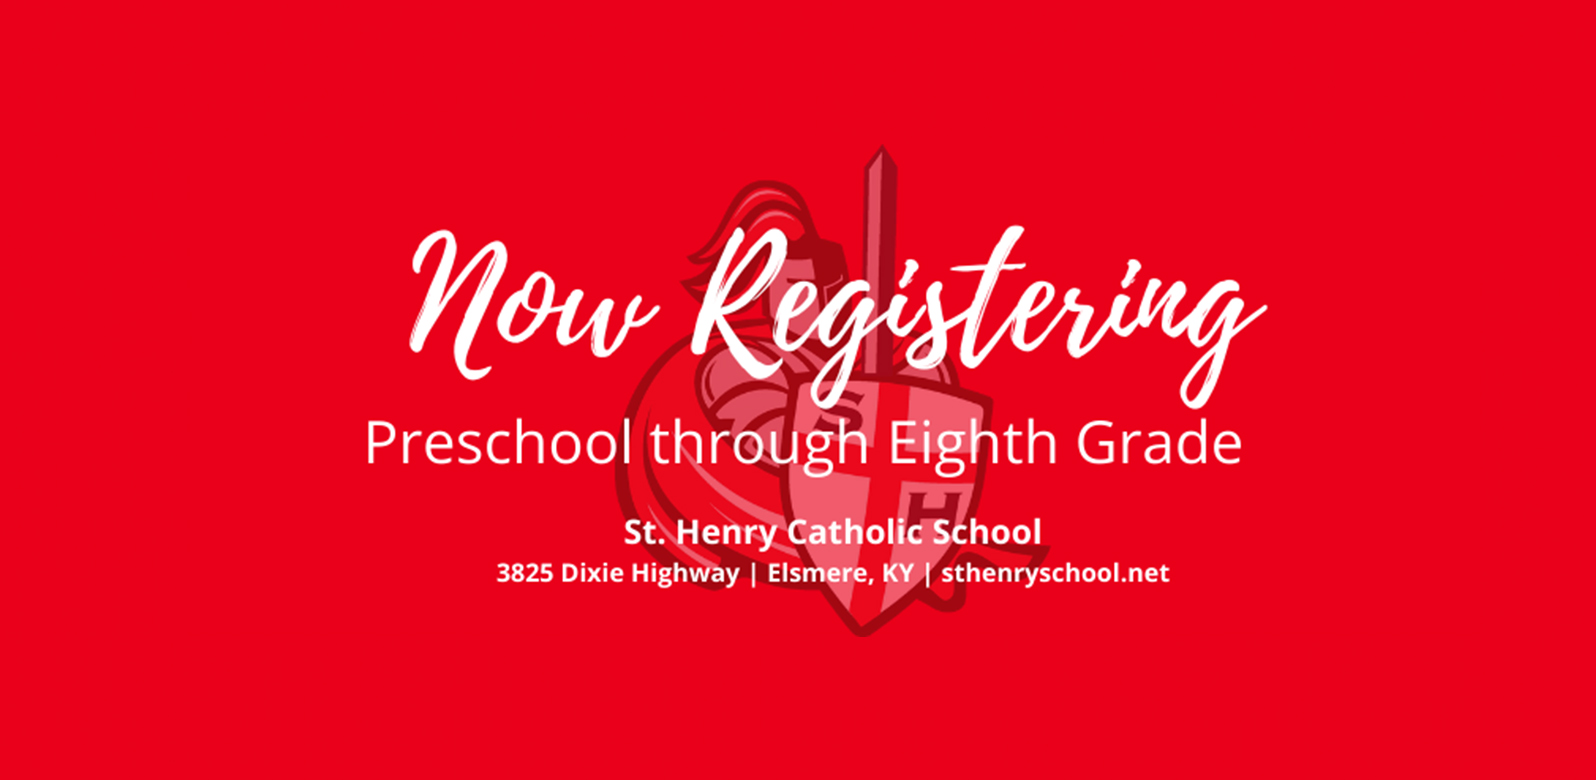 Now Registering - Preschool through Eighth Grade